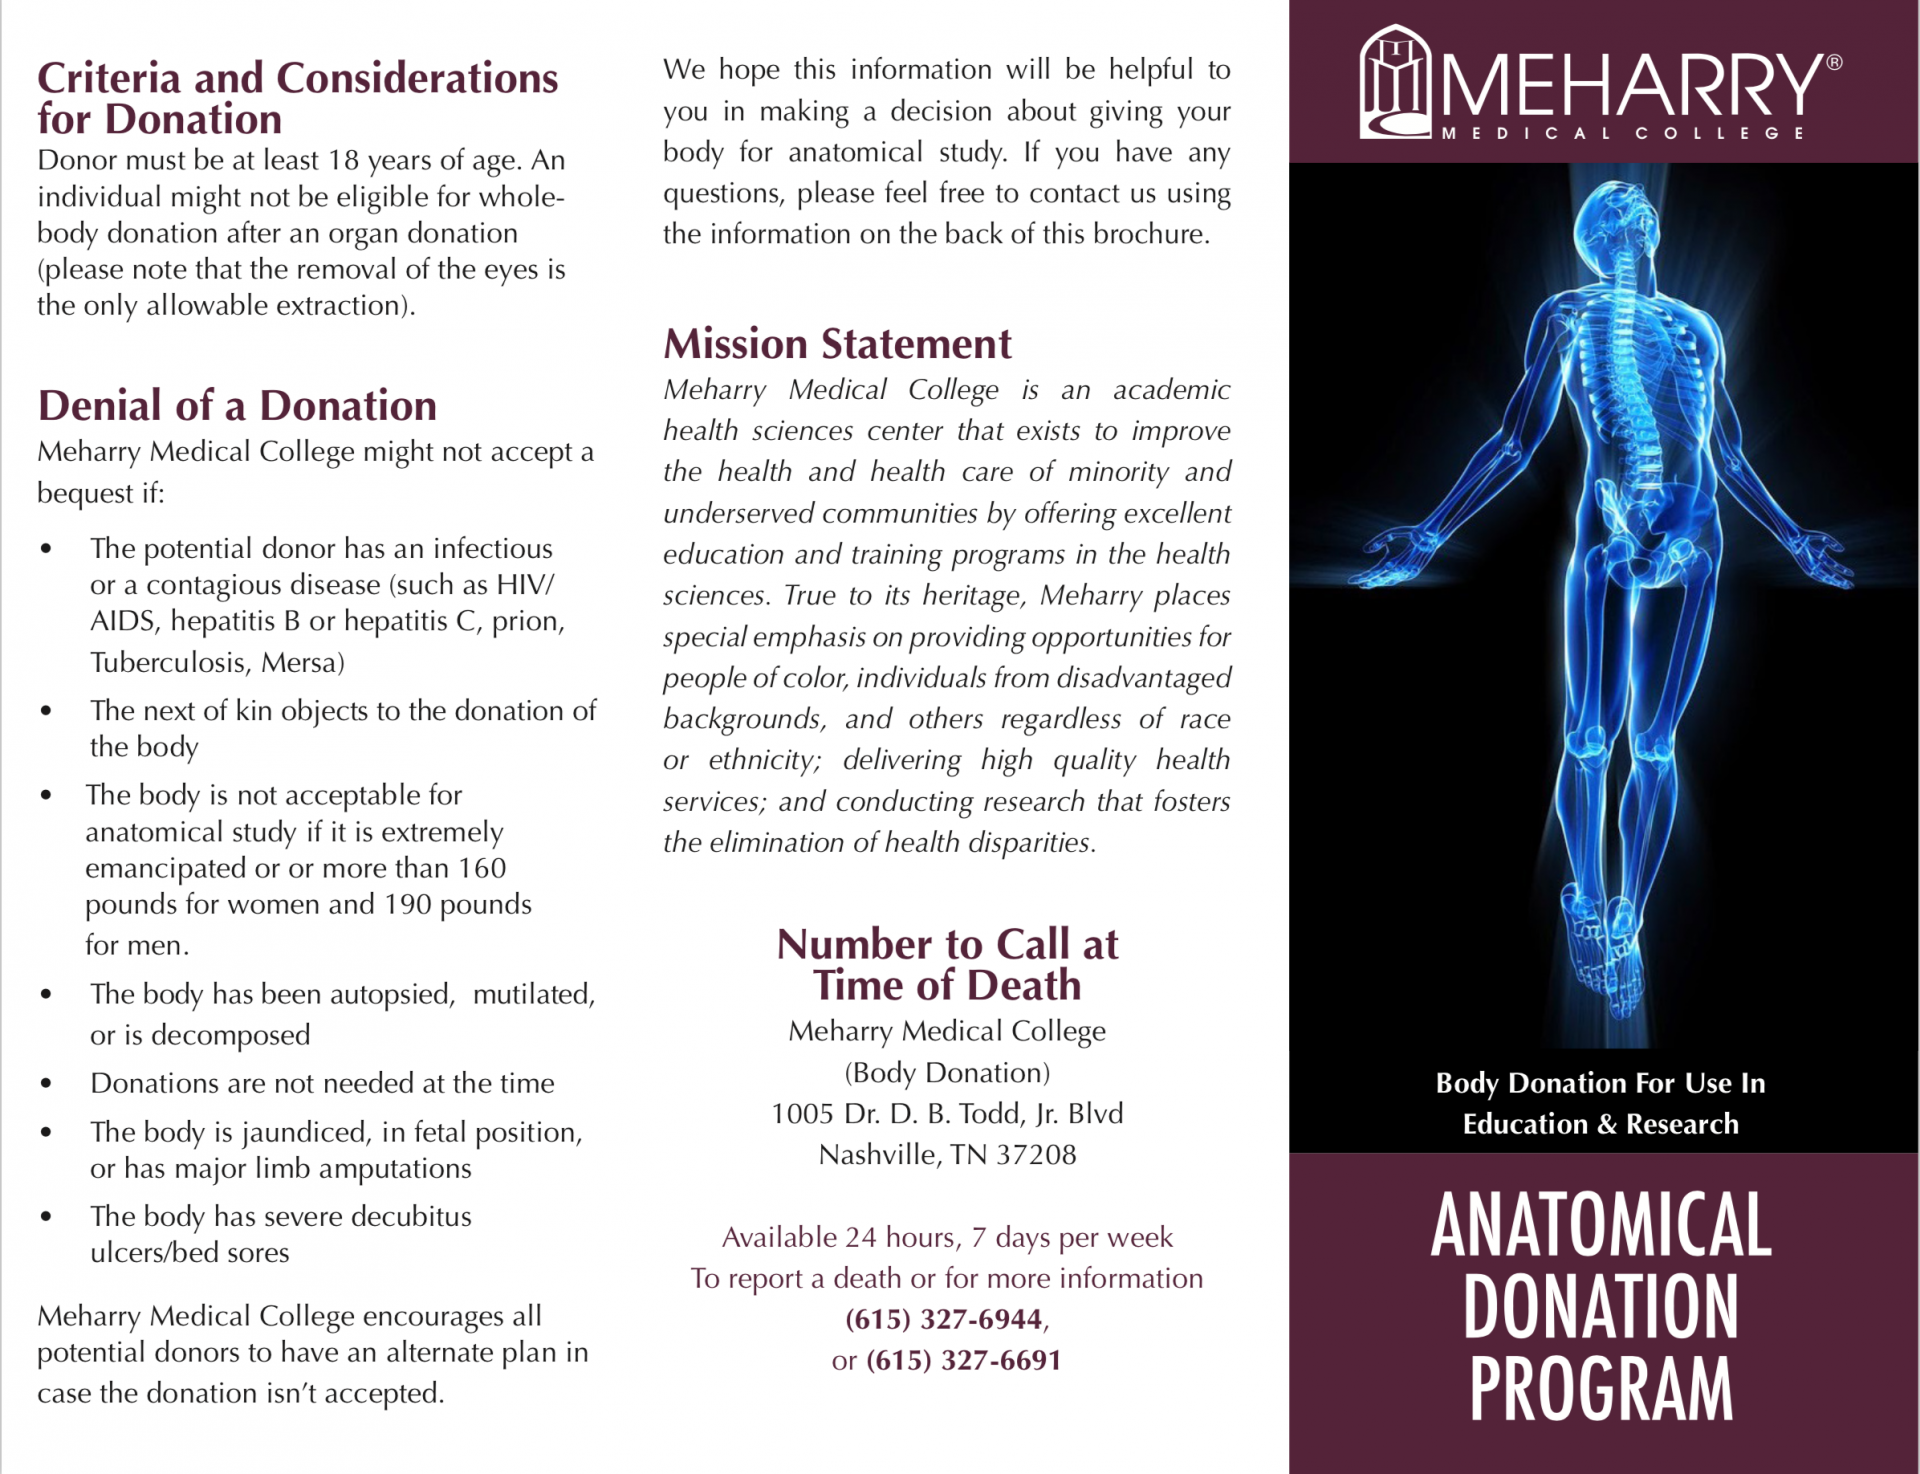 anatomical donation program brochure